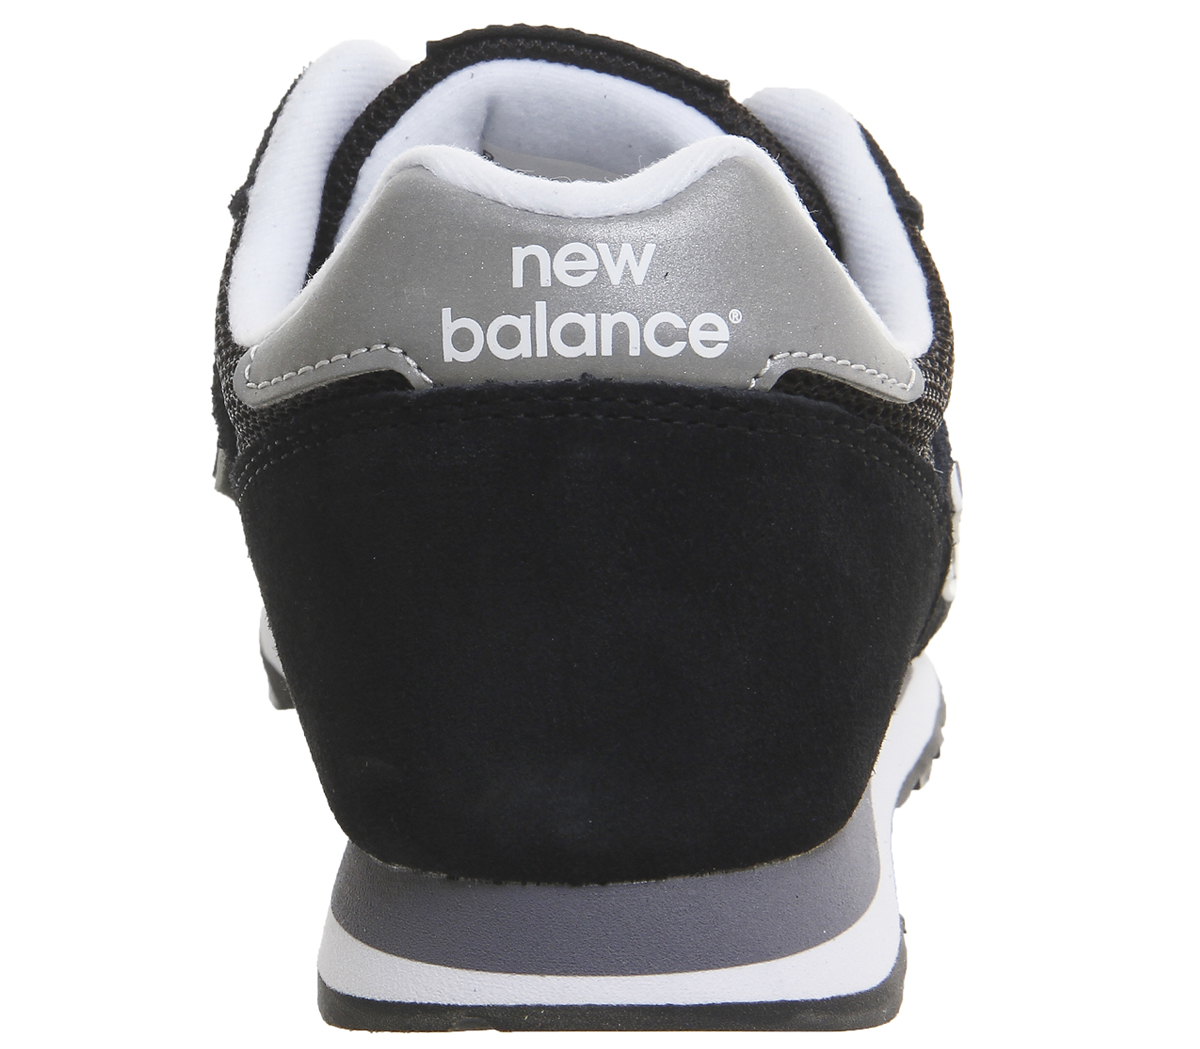 Uomo New Balance 373 Schuhes Trainers BLACK SILVER Trainers Schuhes 373 c5b45e